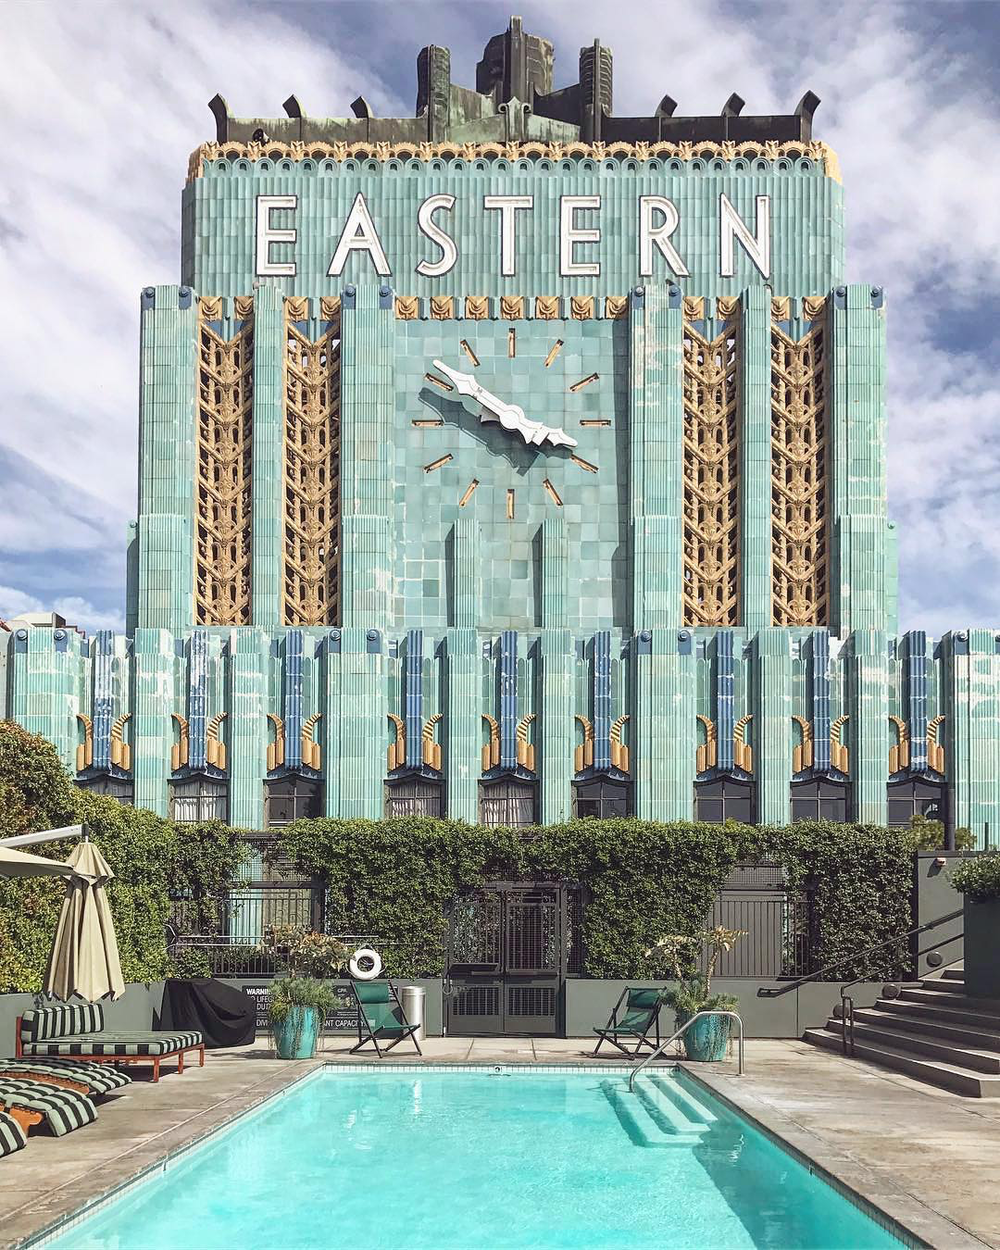 Eastern Columbia House | Los Angeles, CA | c. 1930